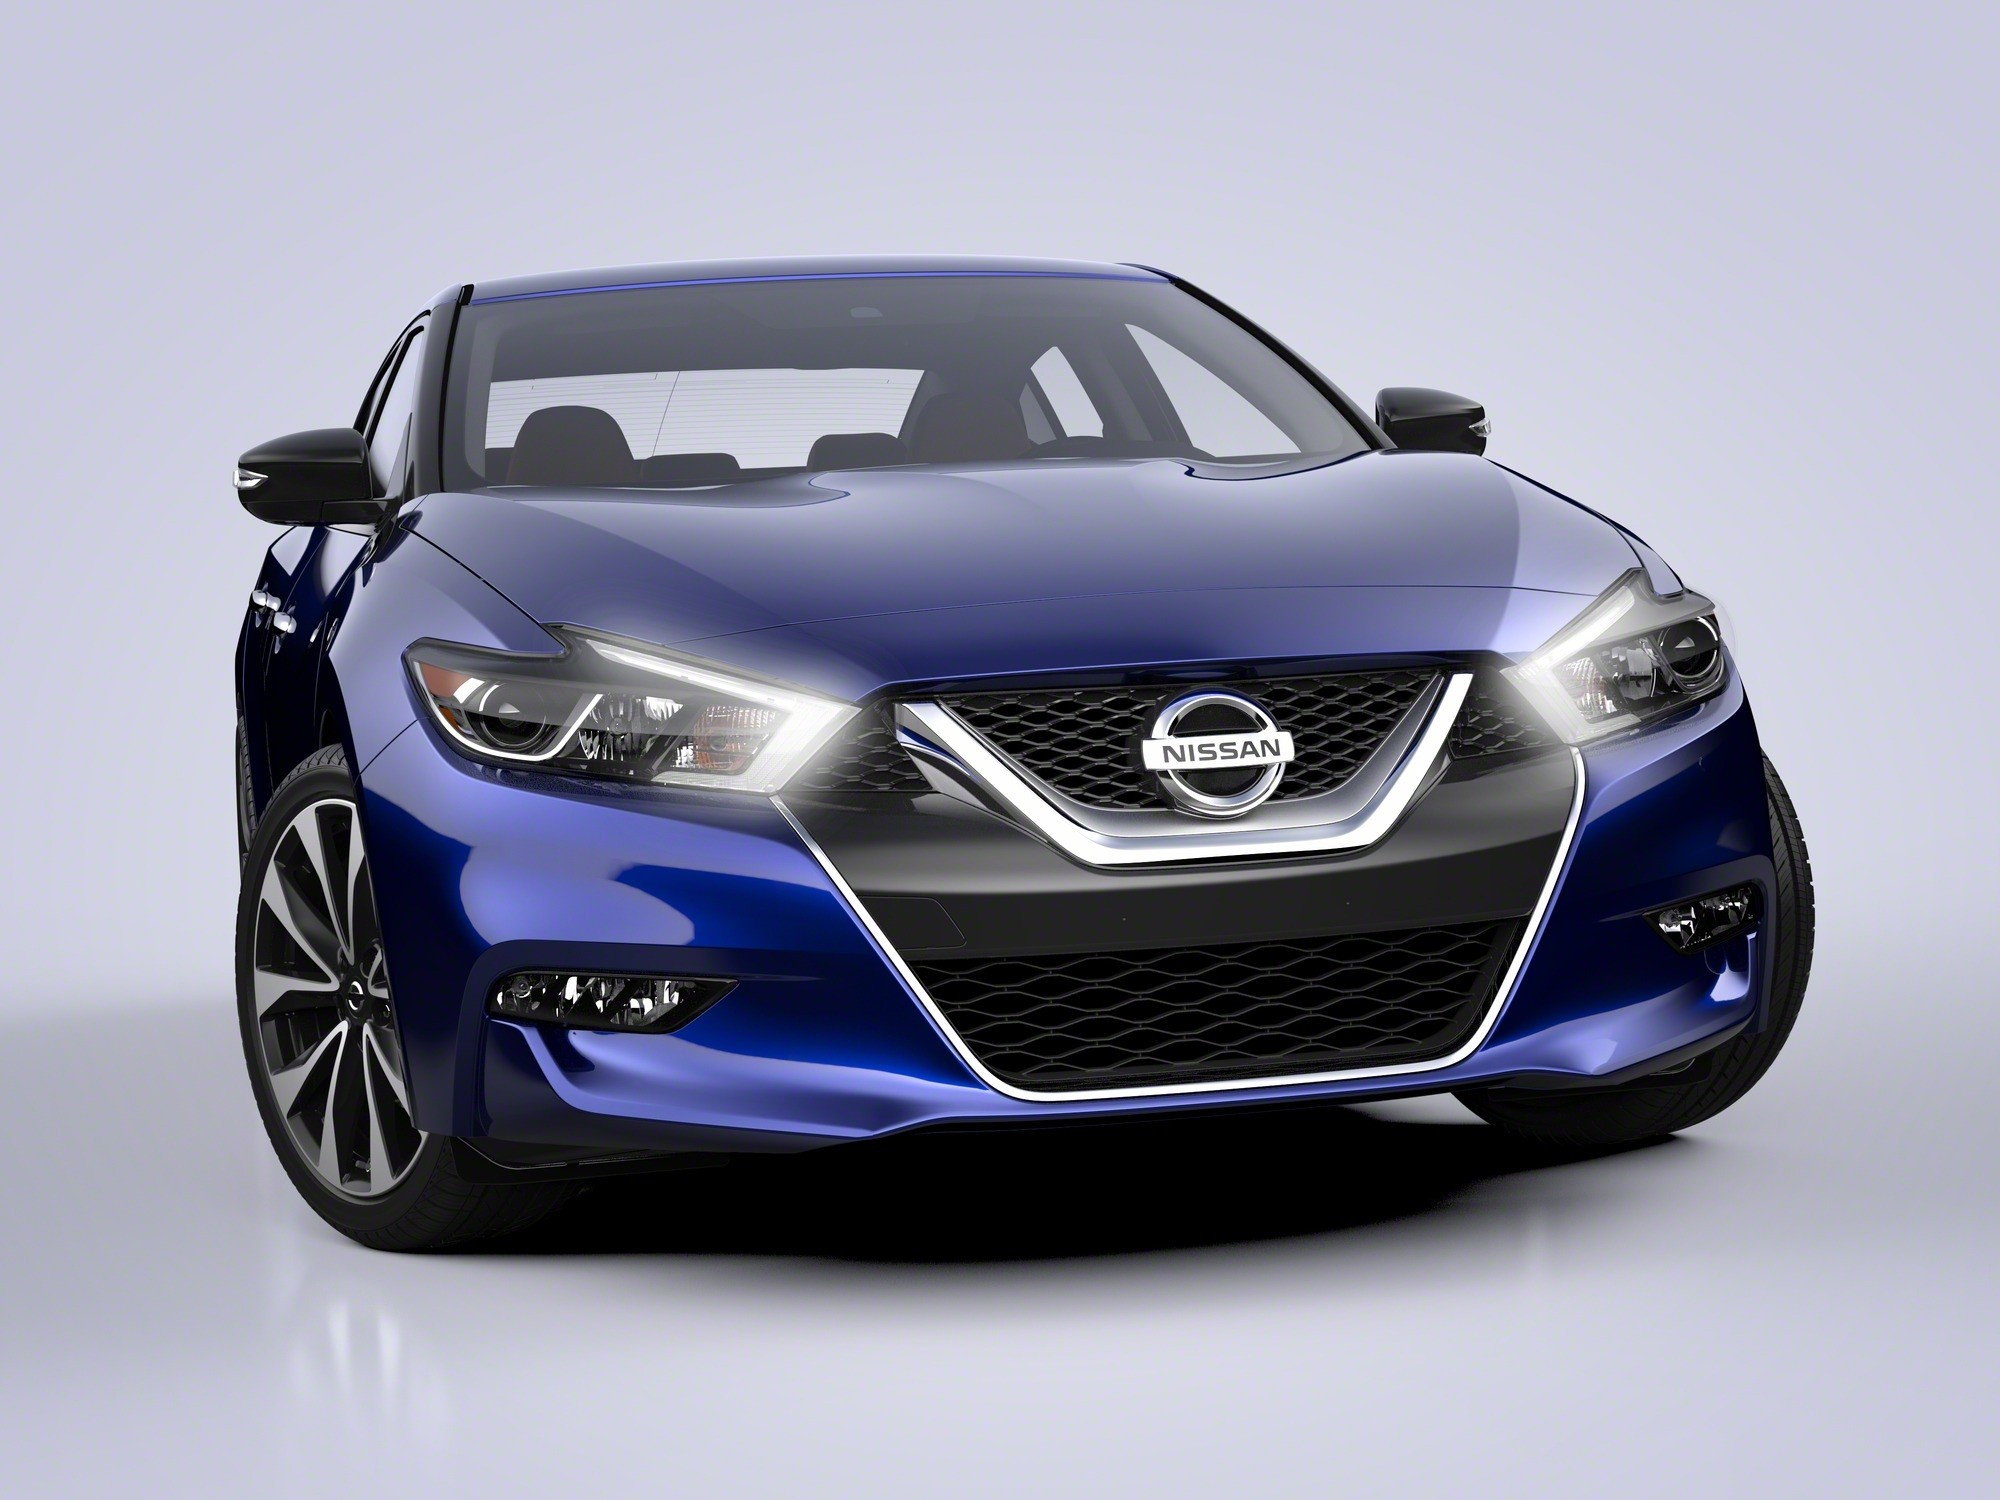 New Nissan Maxima >> 2016 Nissan Maxima Revealed in New York, Prices Start at $32,410 MSRP - autoevolution